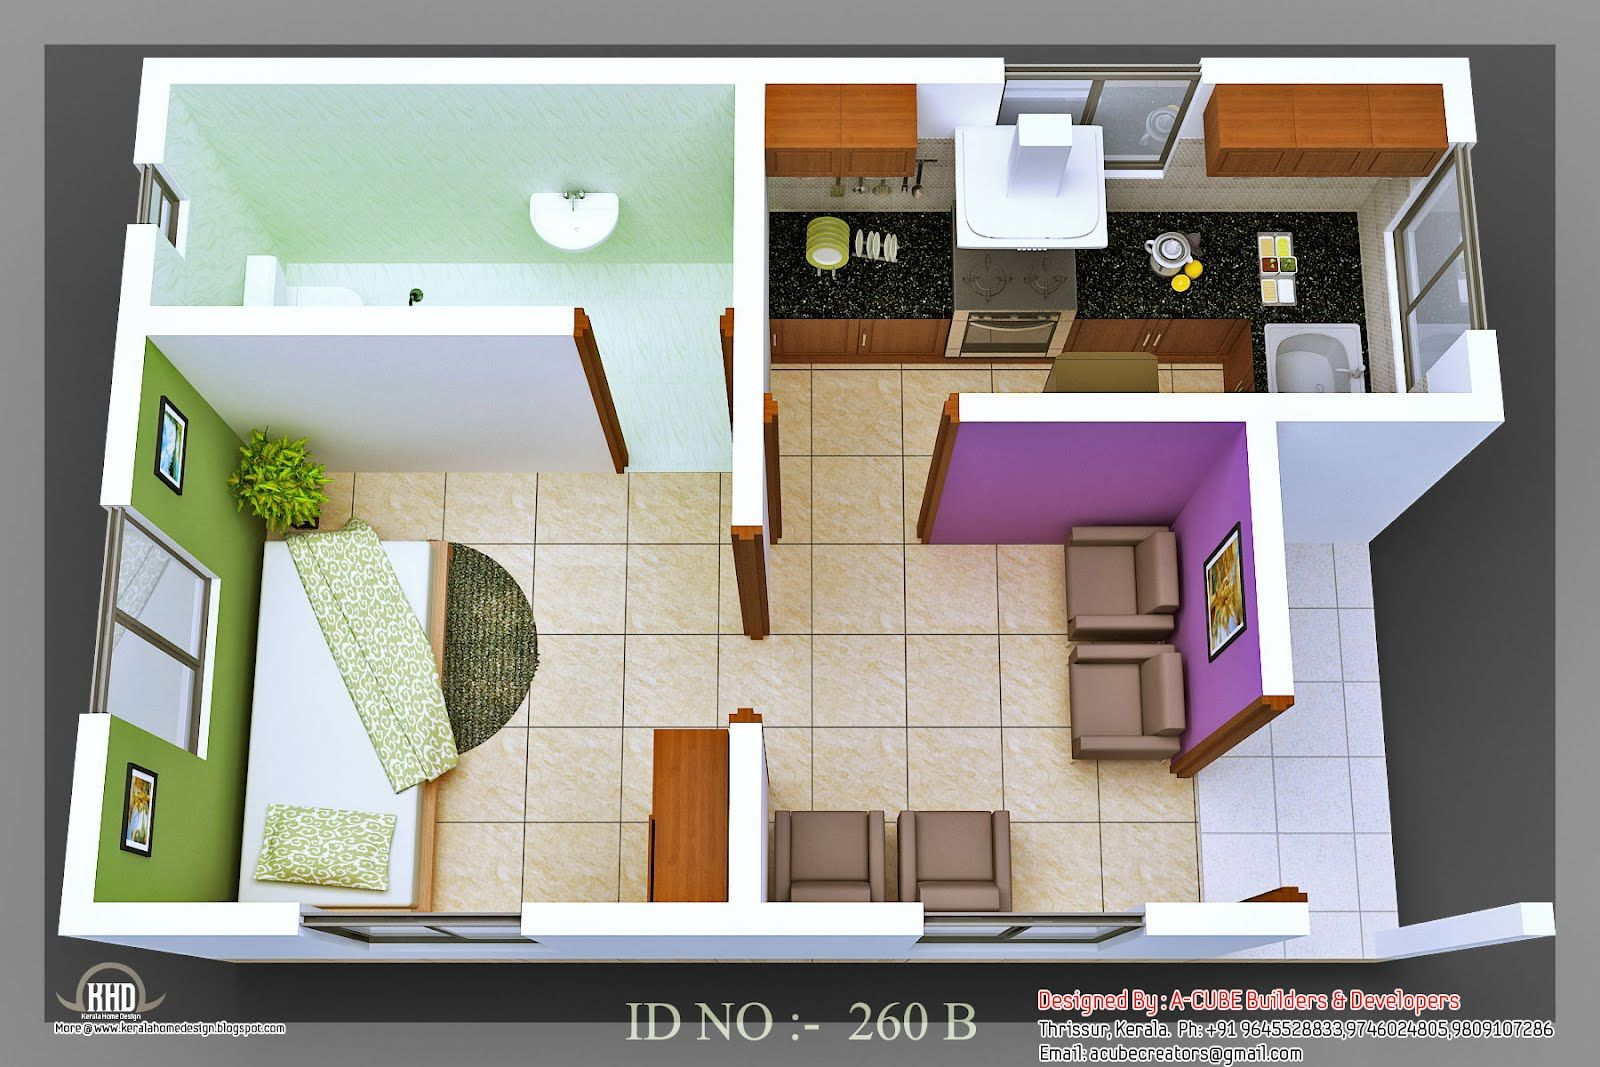 isometric views small house plans kerala home design floor information isometric small house plans - Small Home Plans